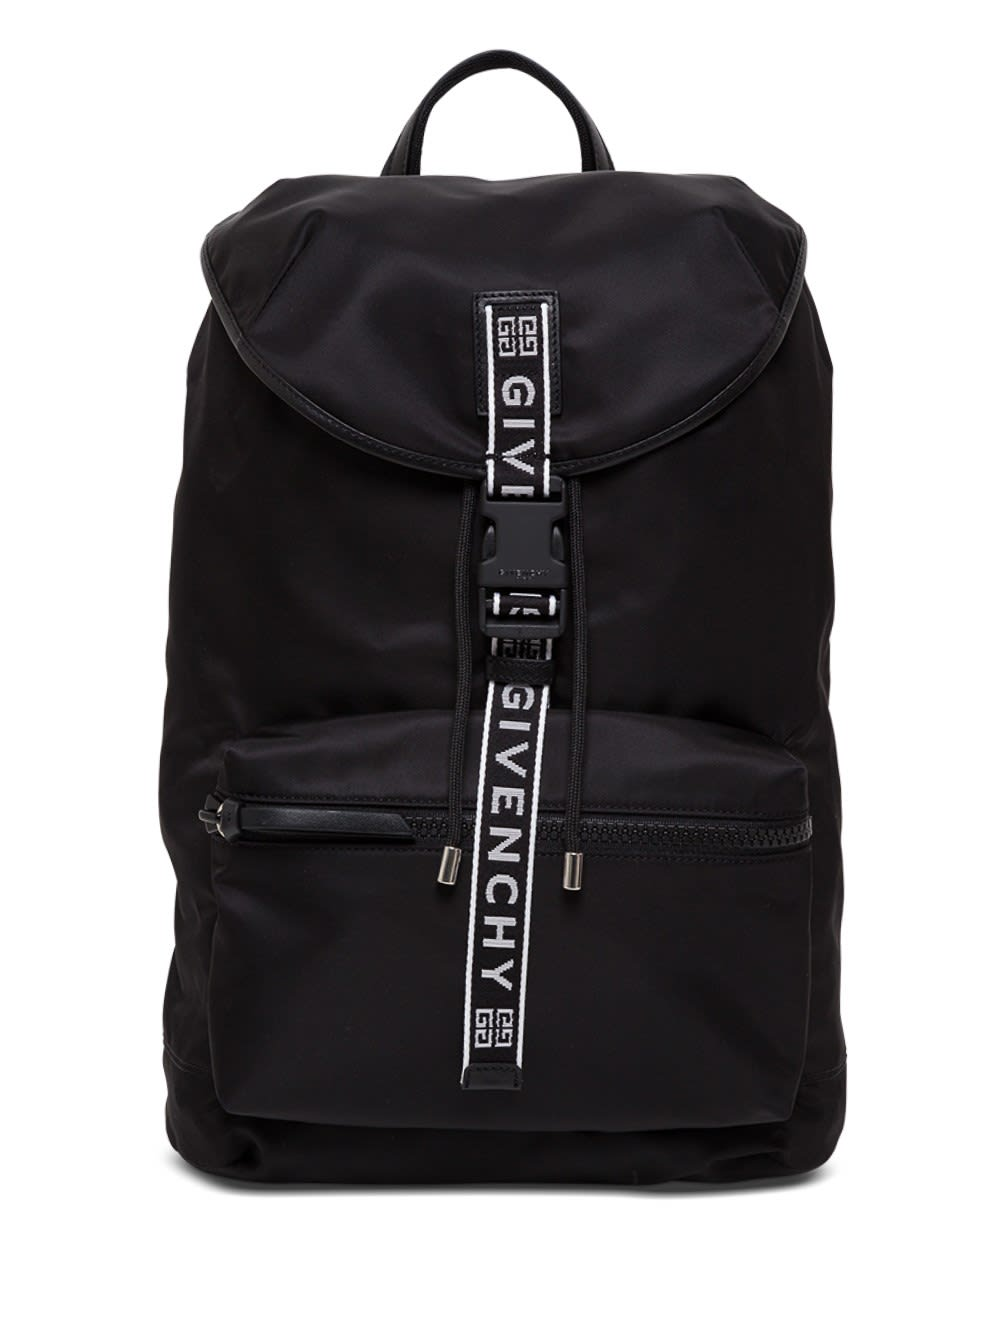 Givenchy 4G NYLON BACKPACK